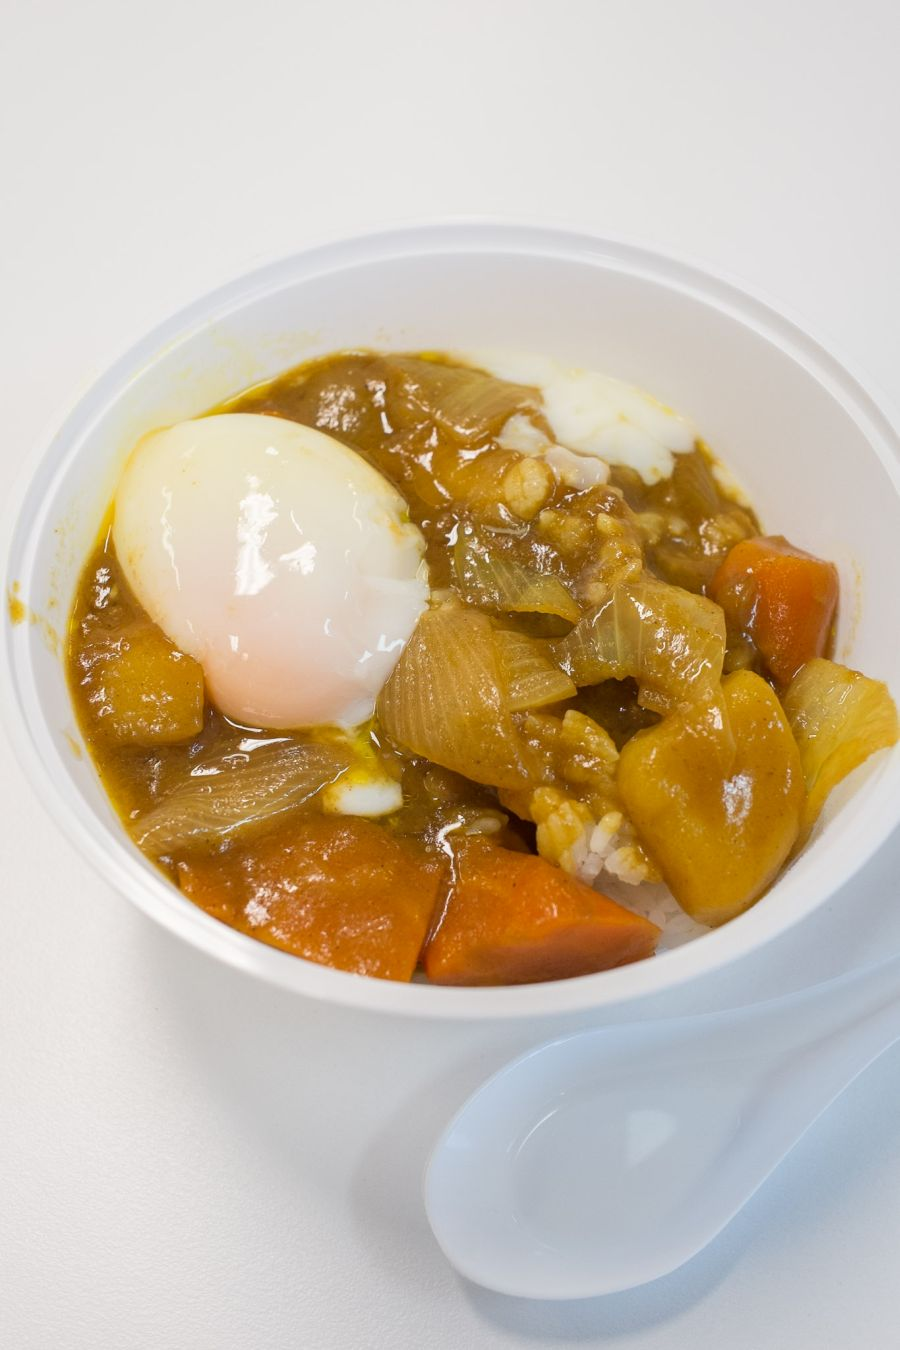 Ontama curry (AU$7, medium size)